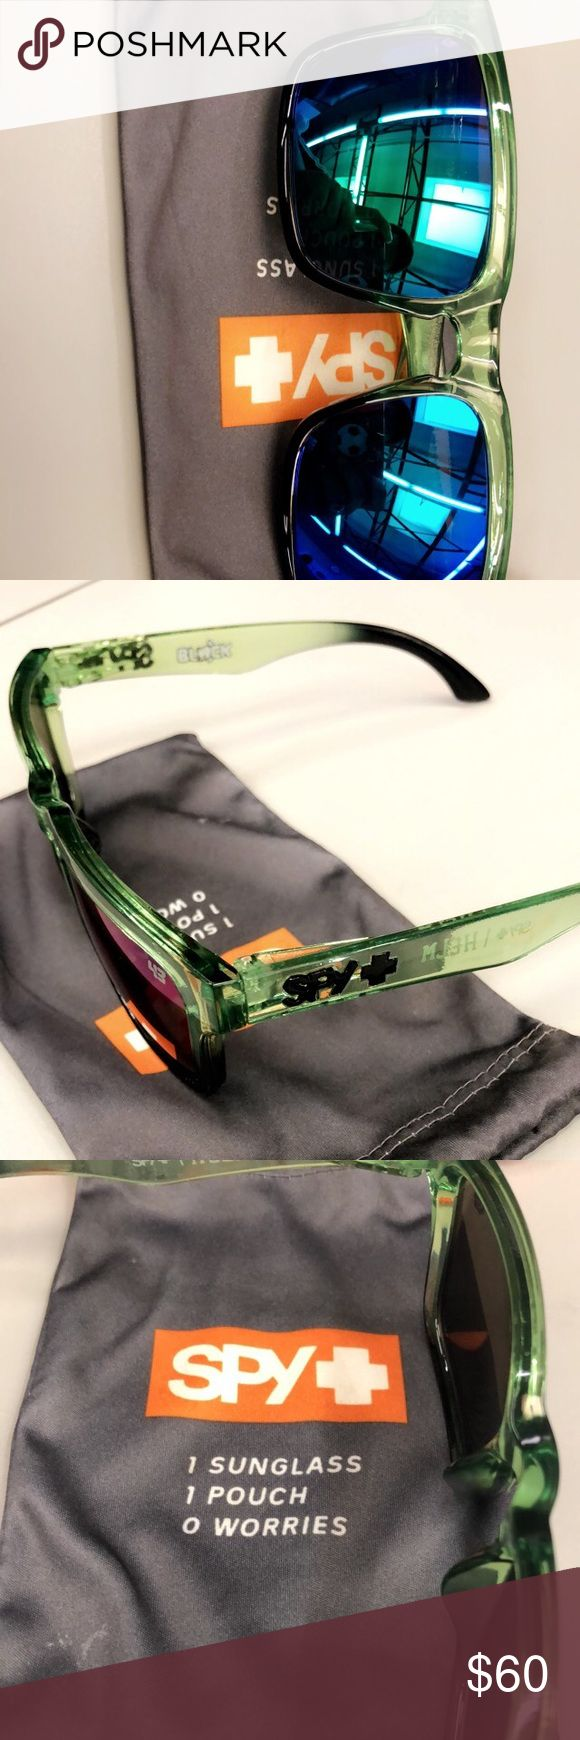 Spy Sunglasses Like New Like new Spy sunglasses, have a pair of Green Helm's with blue lenses and a pair of Flynn used for snowboard, Surf, Quad riding type of shades, both like new only used once or twice. Super expensive shades selling dirt cheap. $60 each SPY Accessories Glasses